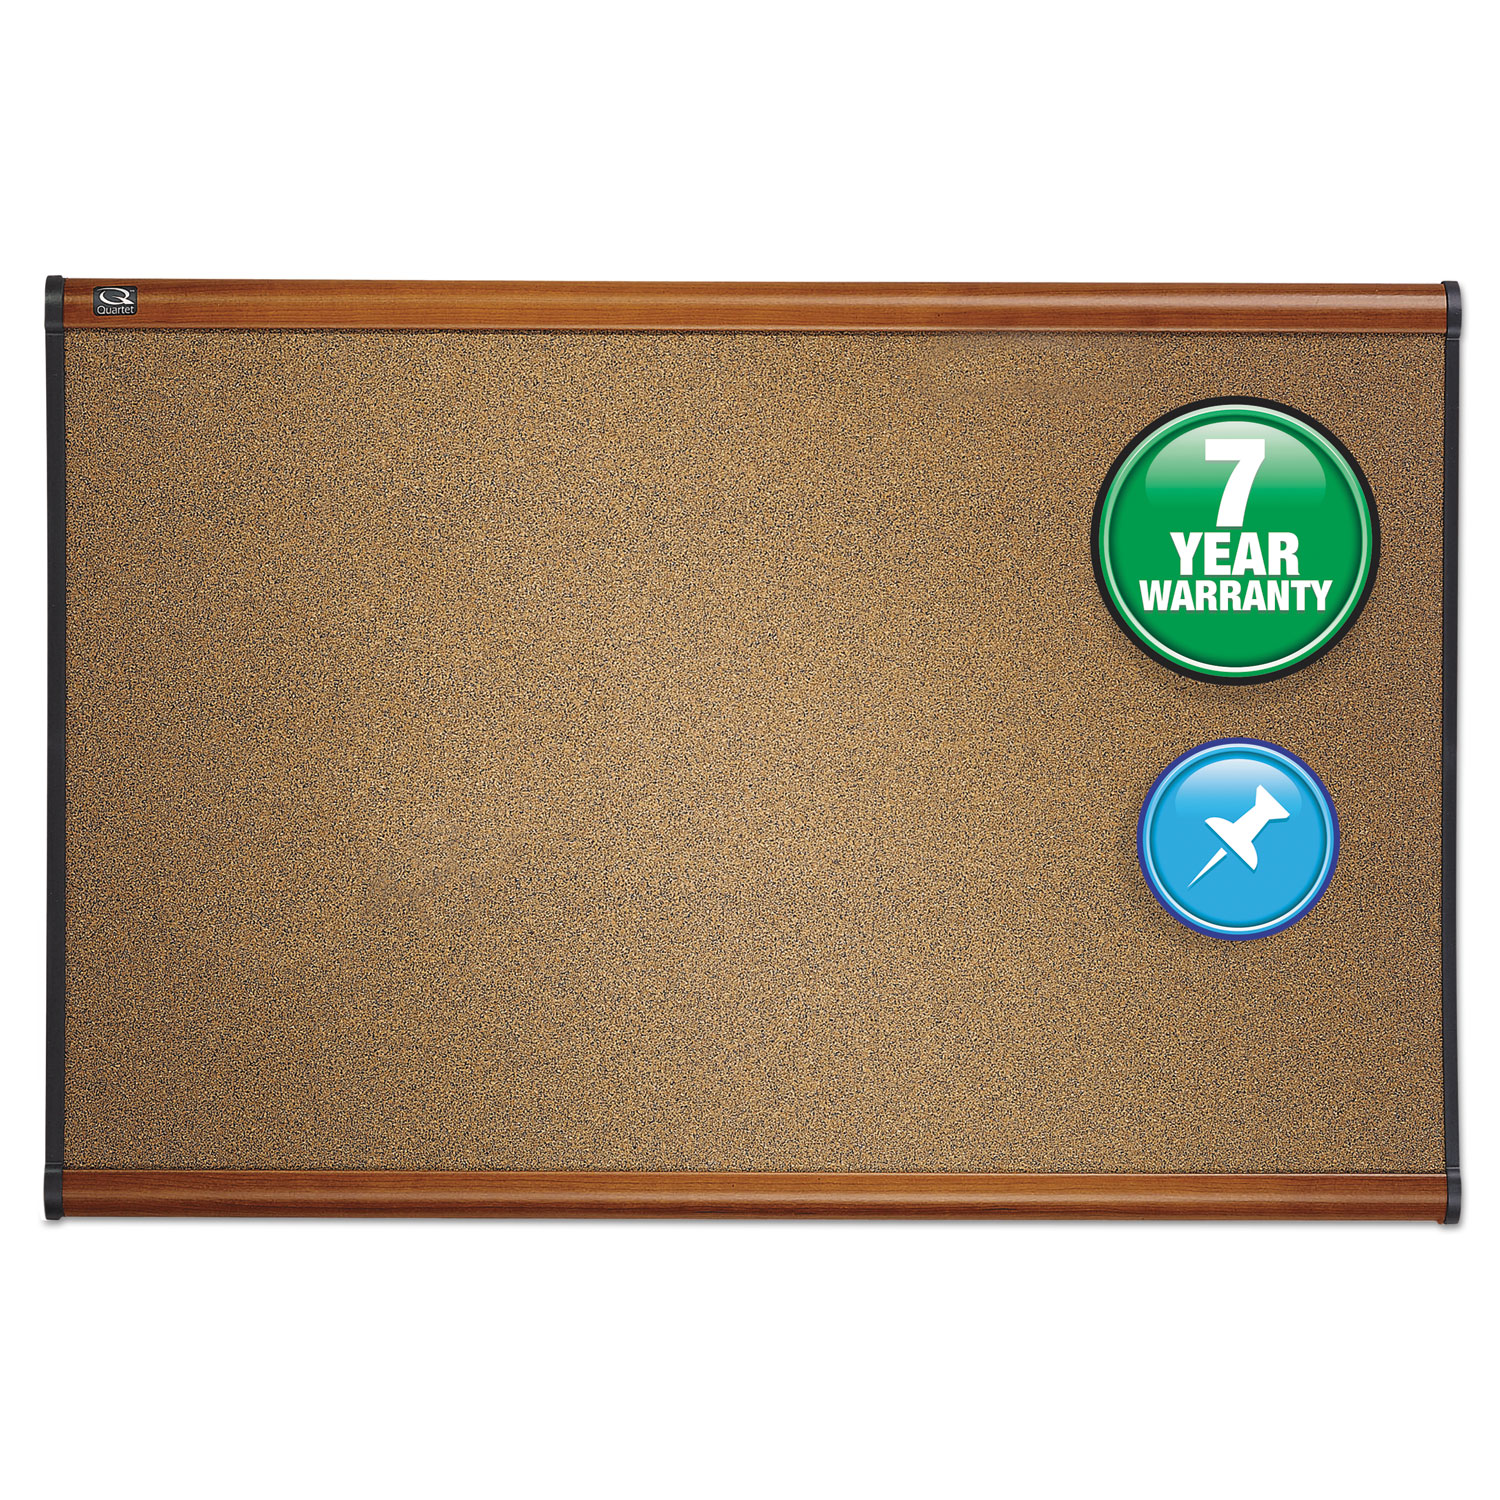 Picture of Prestige Bulletin Board, Brown Graphite-Blend Surface, 72 x 48, Cherry Frame